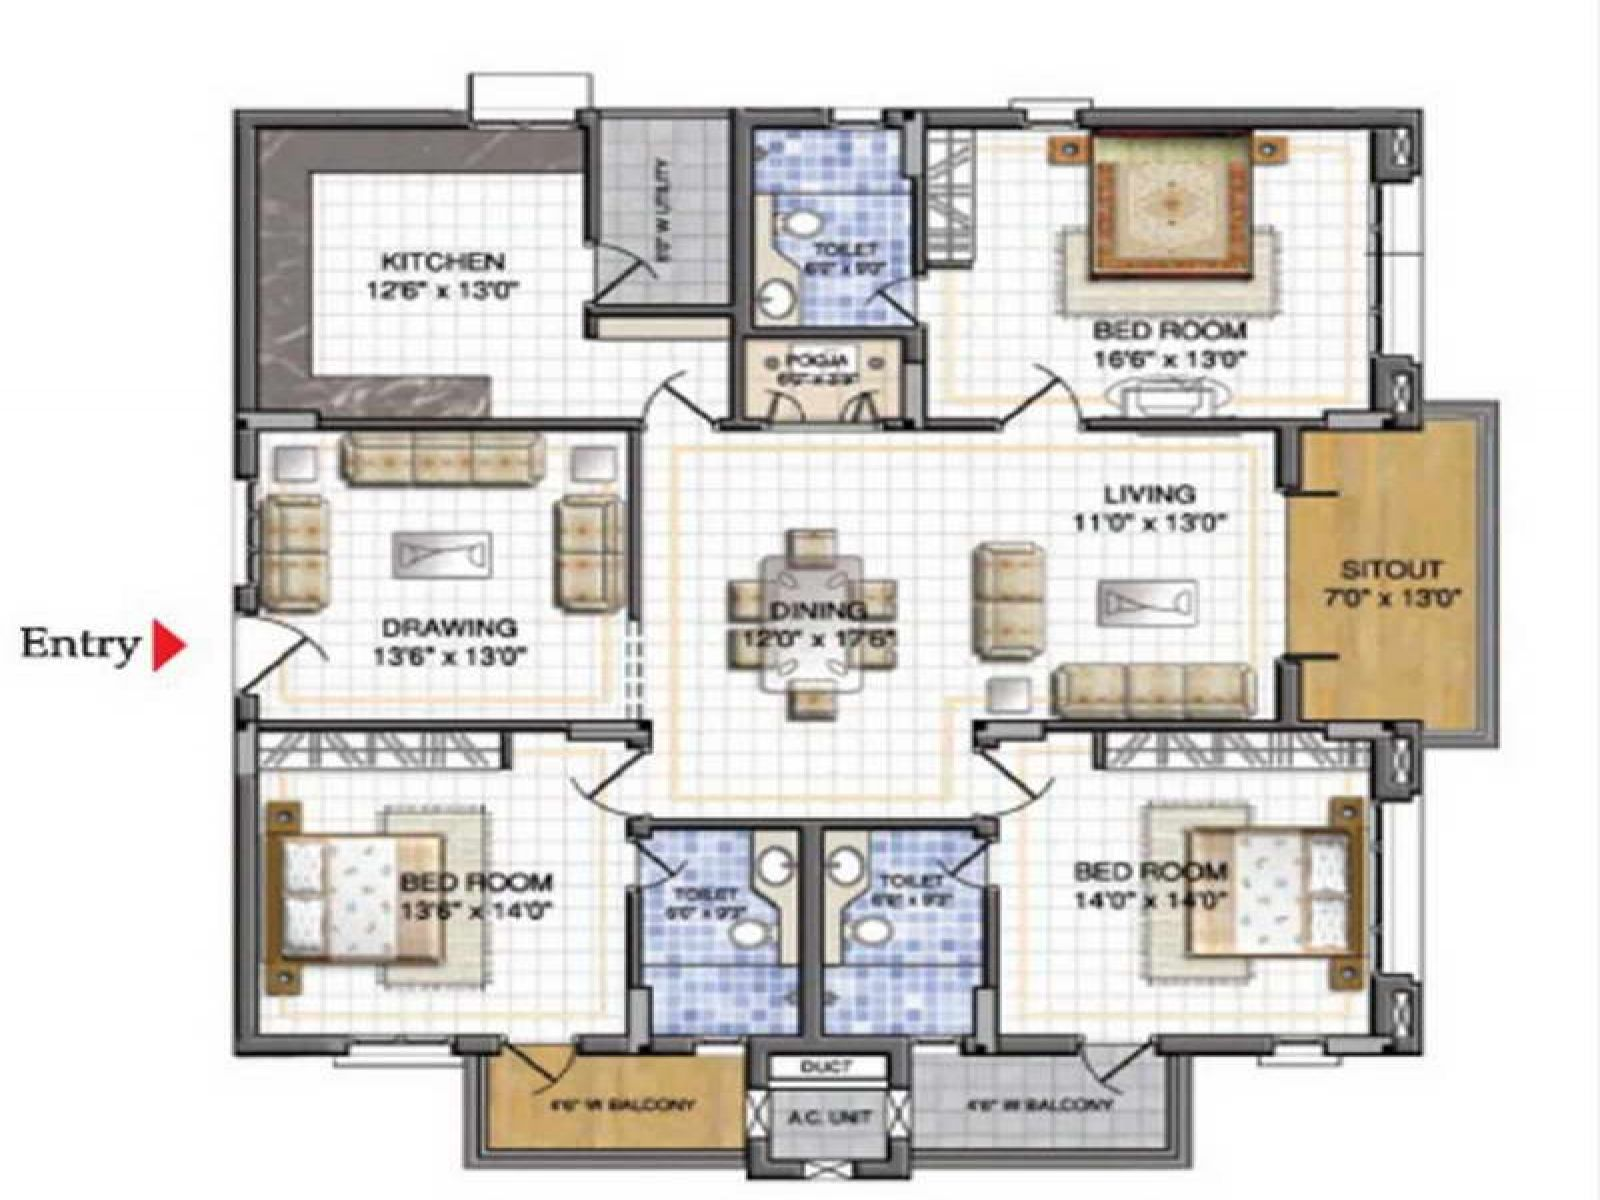 17 best 1000 images about home on pinterest house plans bedroom - House Plans And Designs